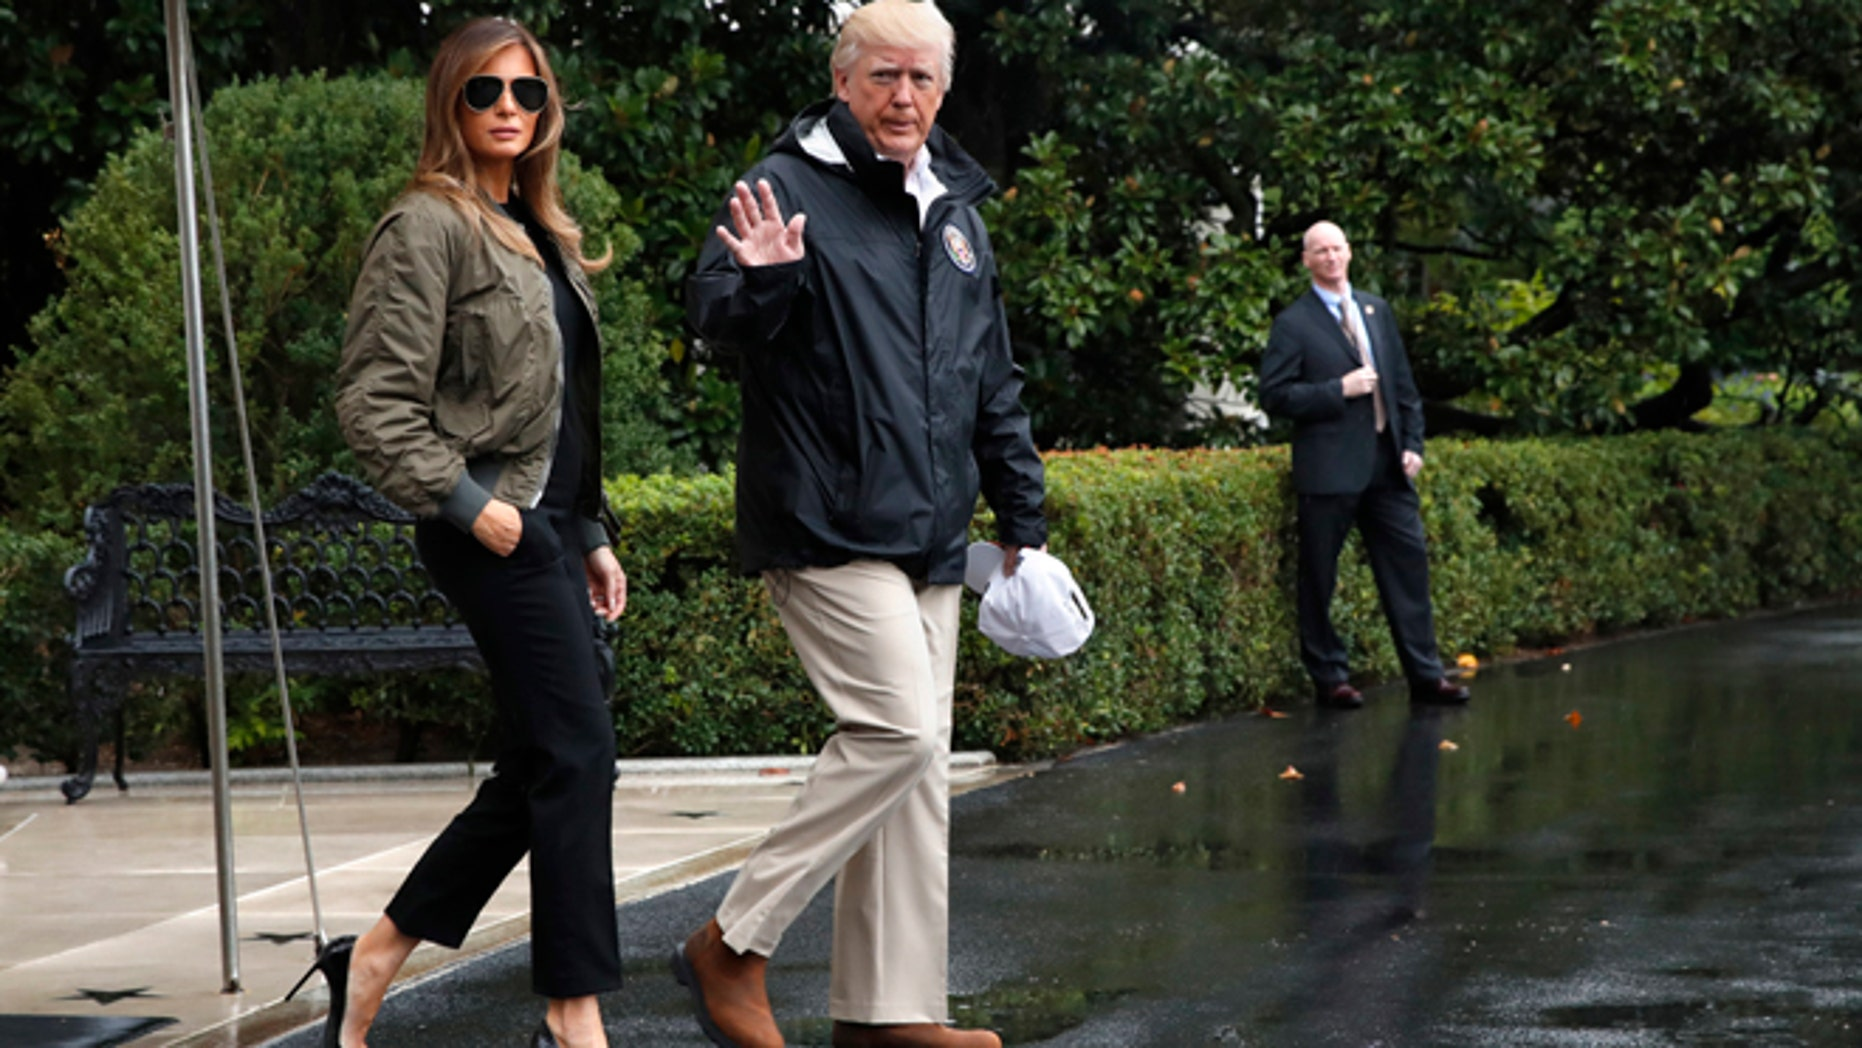 President Trump and First Lady Melania Trump leave White House to visit hurricane-ravaged areas. The first lady was criticized for wearing stilettos on a trip to a flooded area.